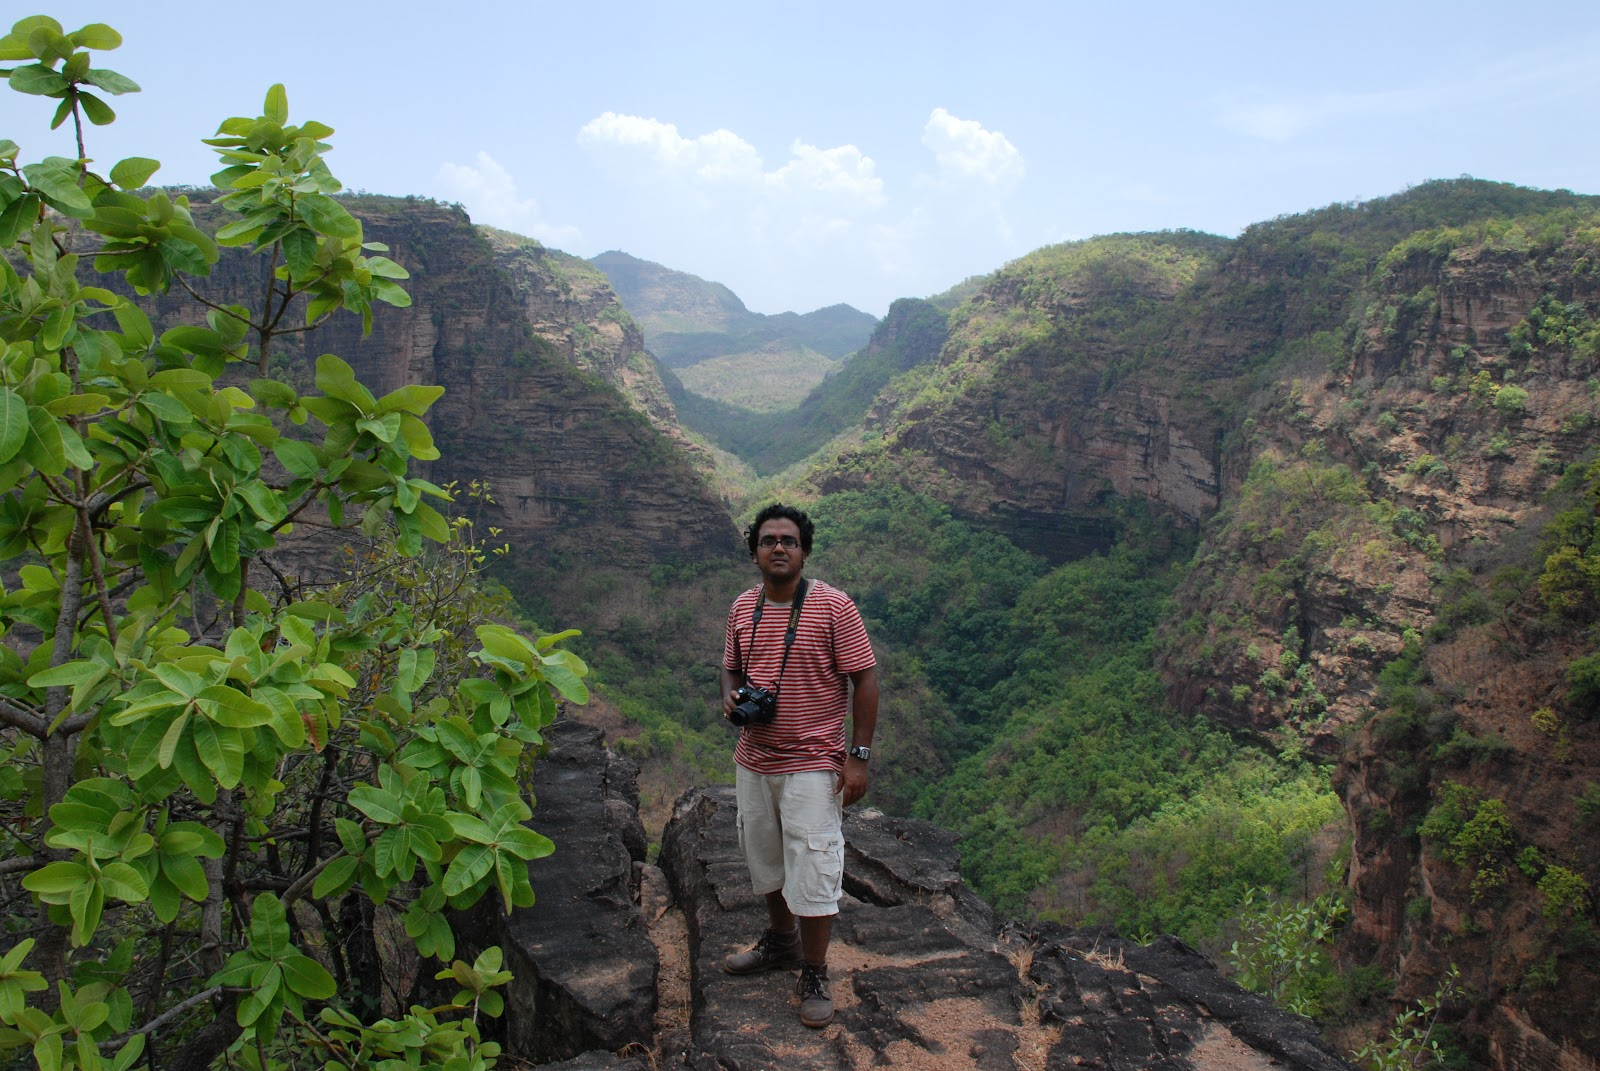 Pachmarhi India  city images : Pachmarhi A Beautiful Hill Station of Madhya Pradesh | India Tourism